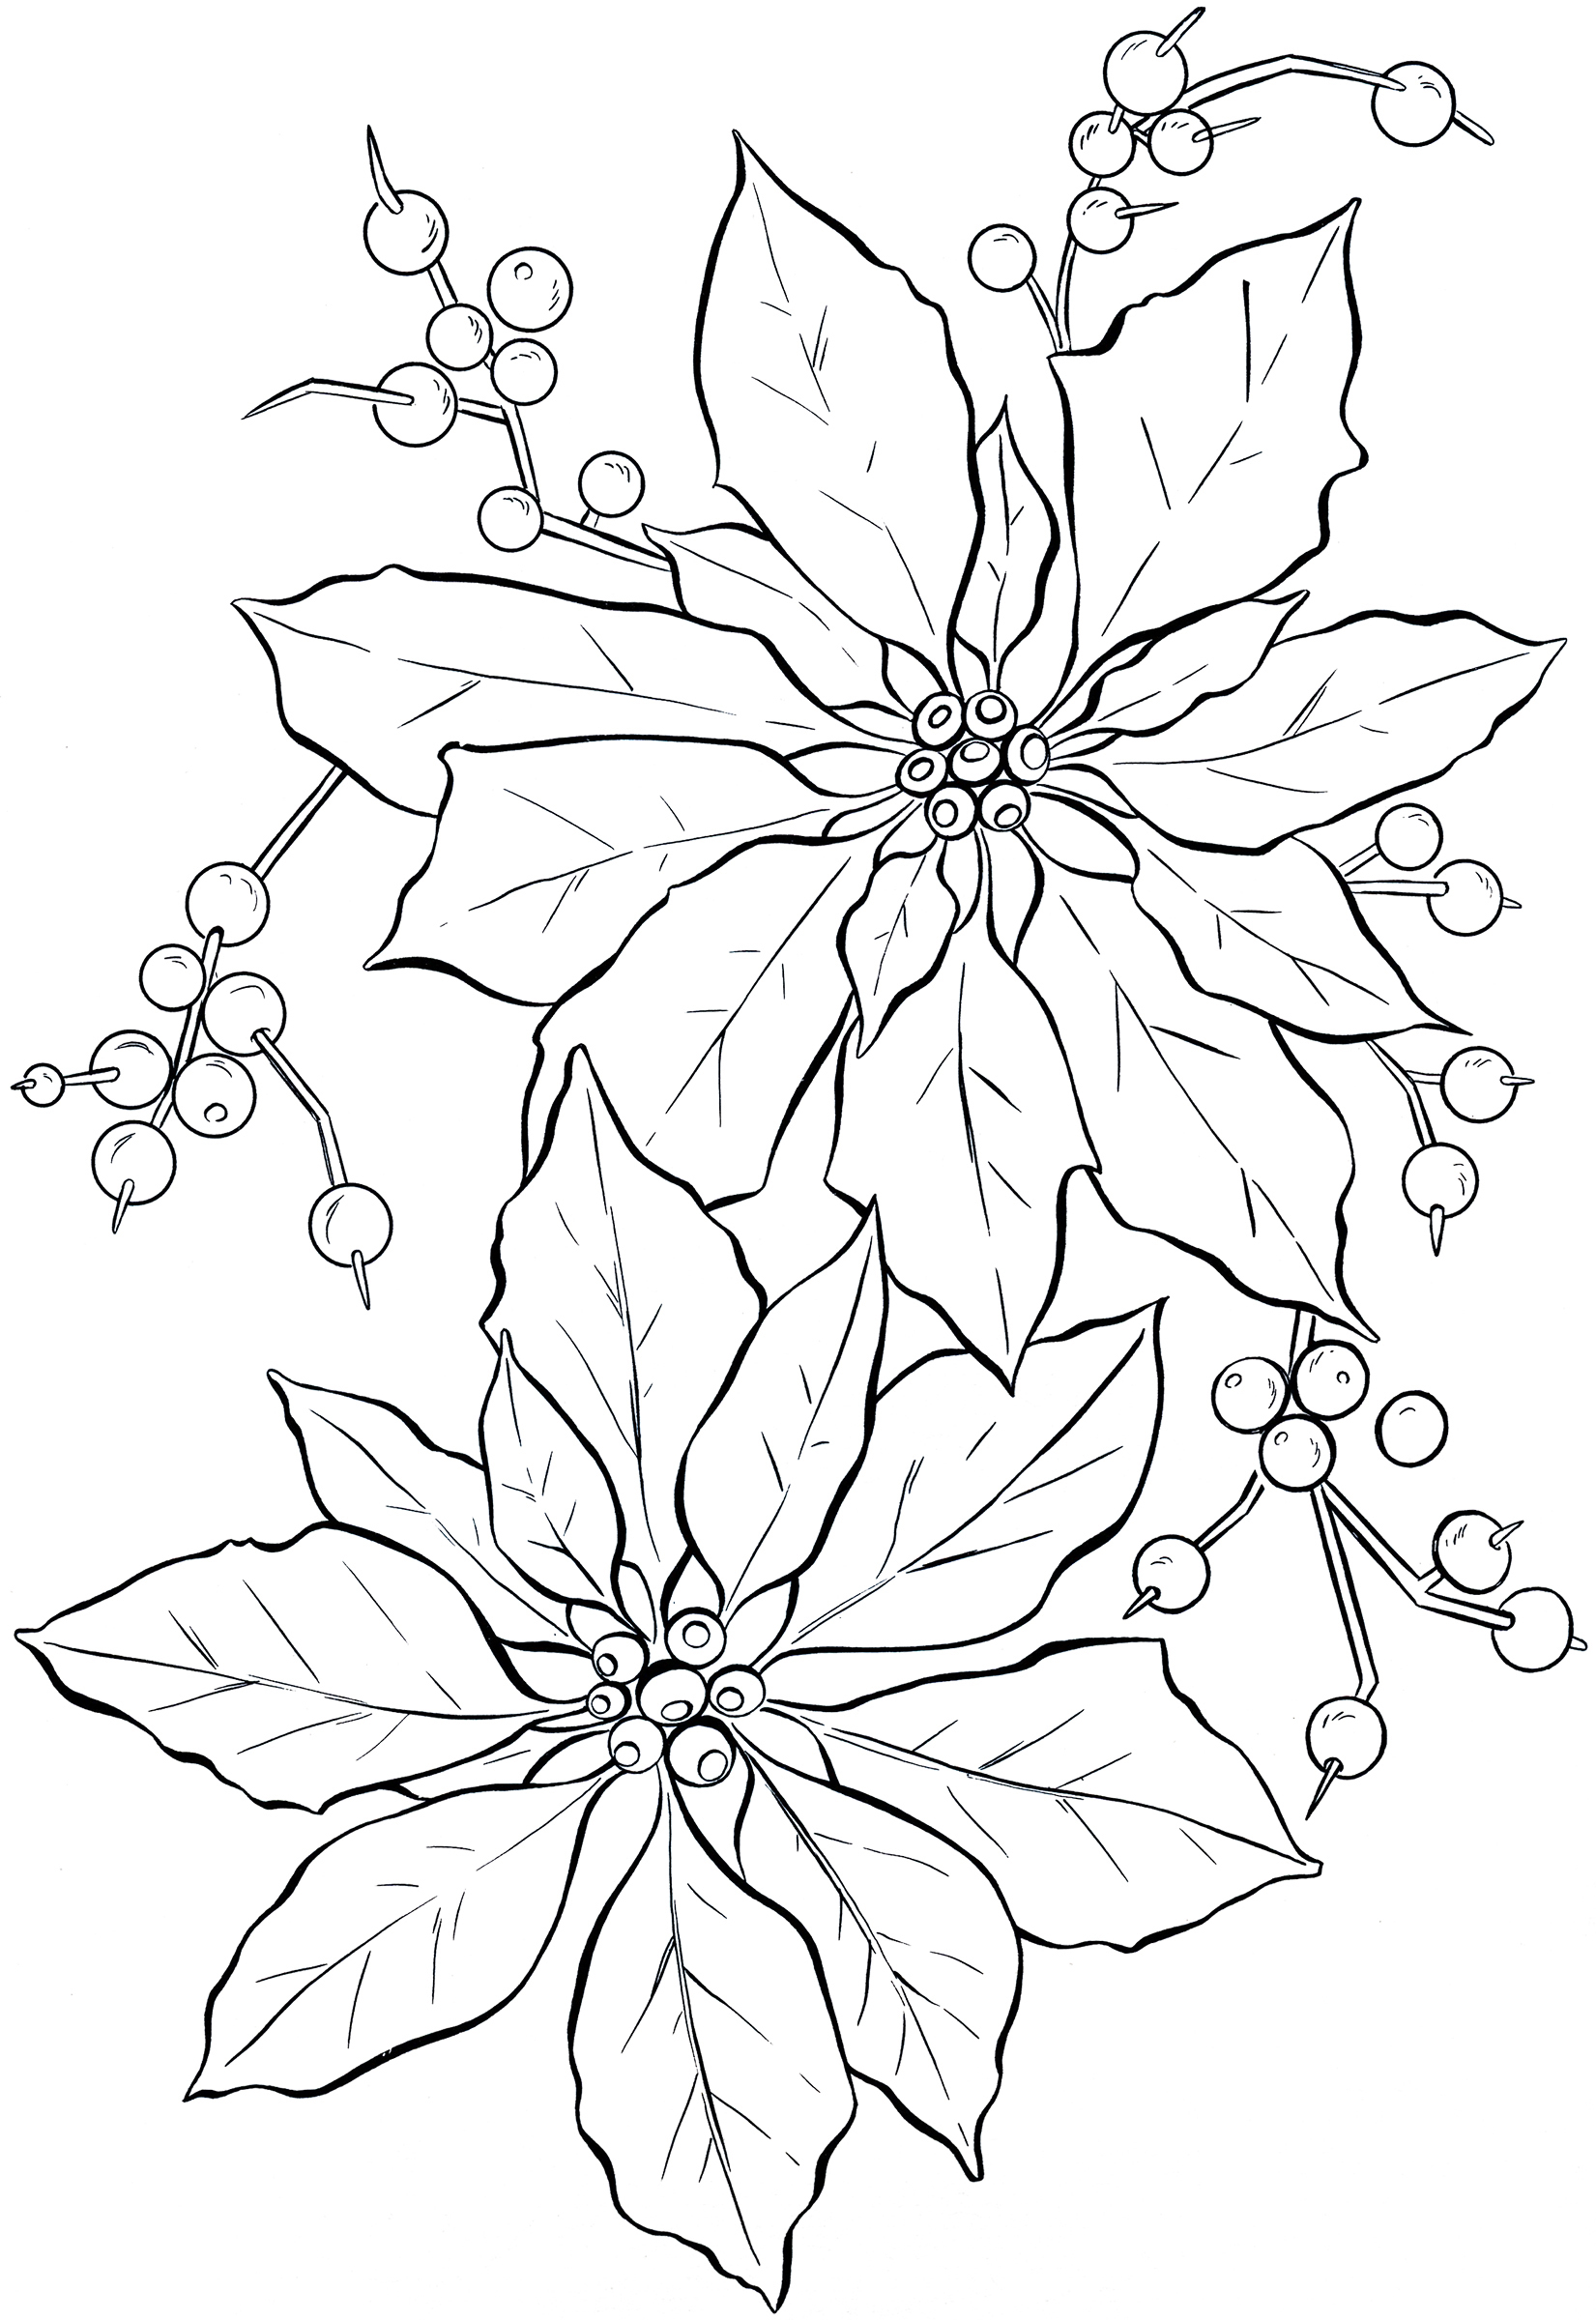 Line Art Images : Free christmas images the graphics fairy